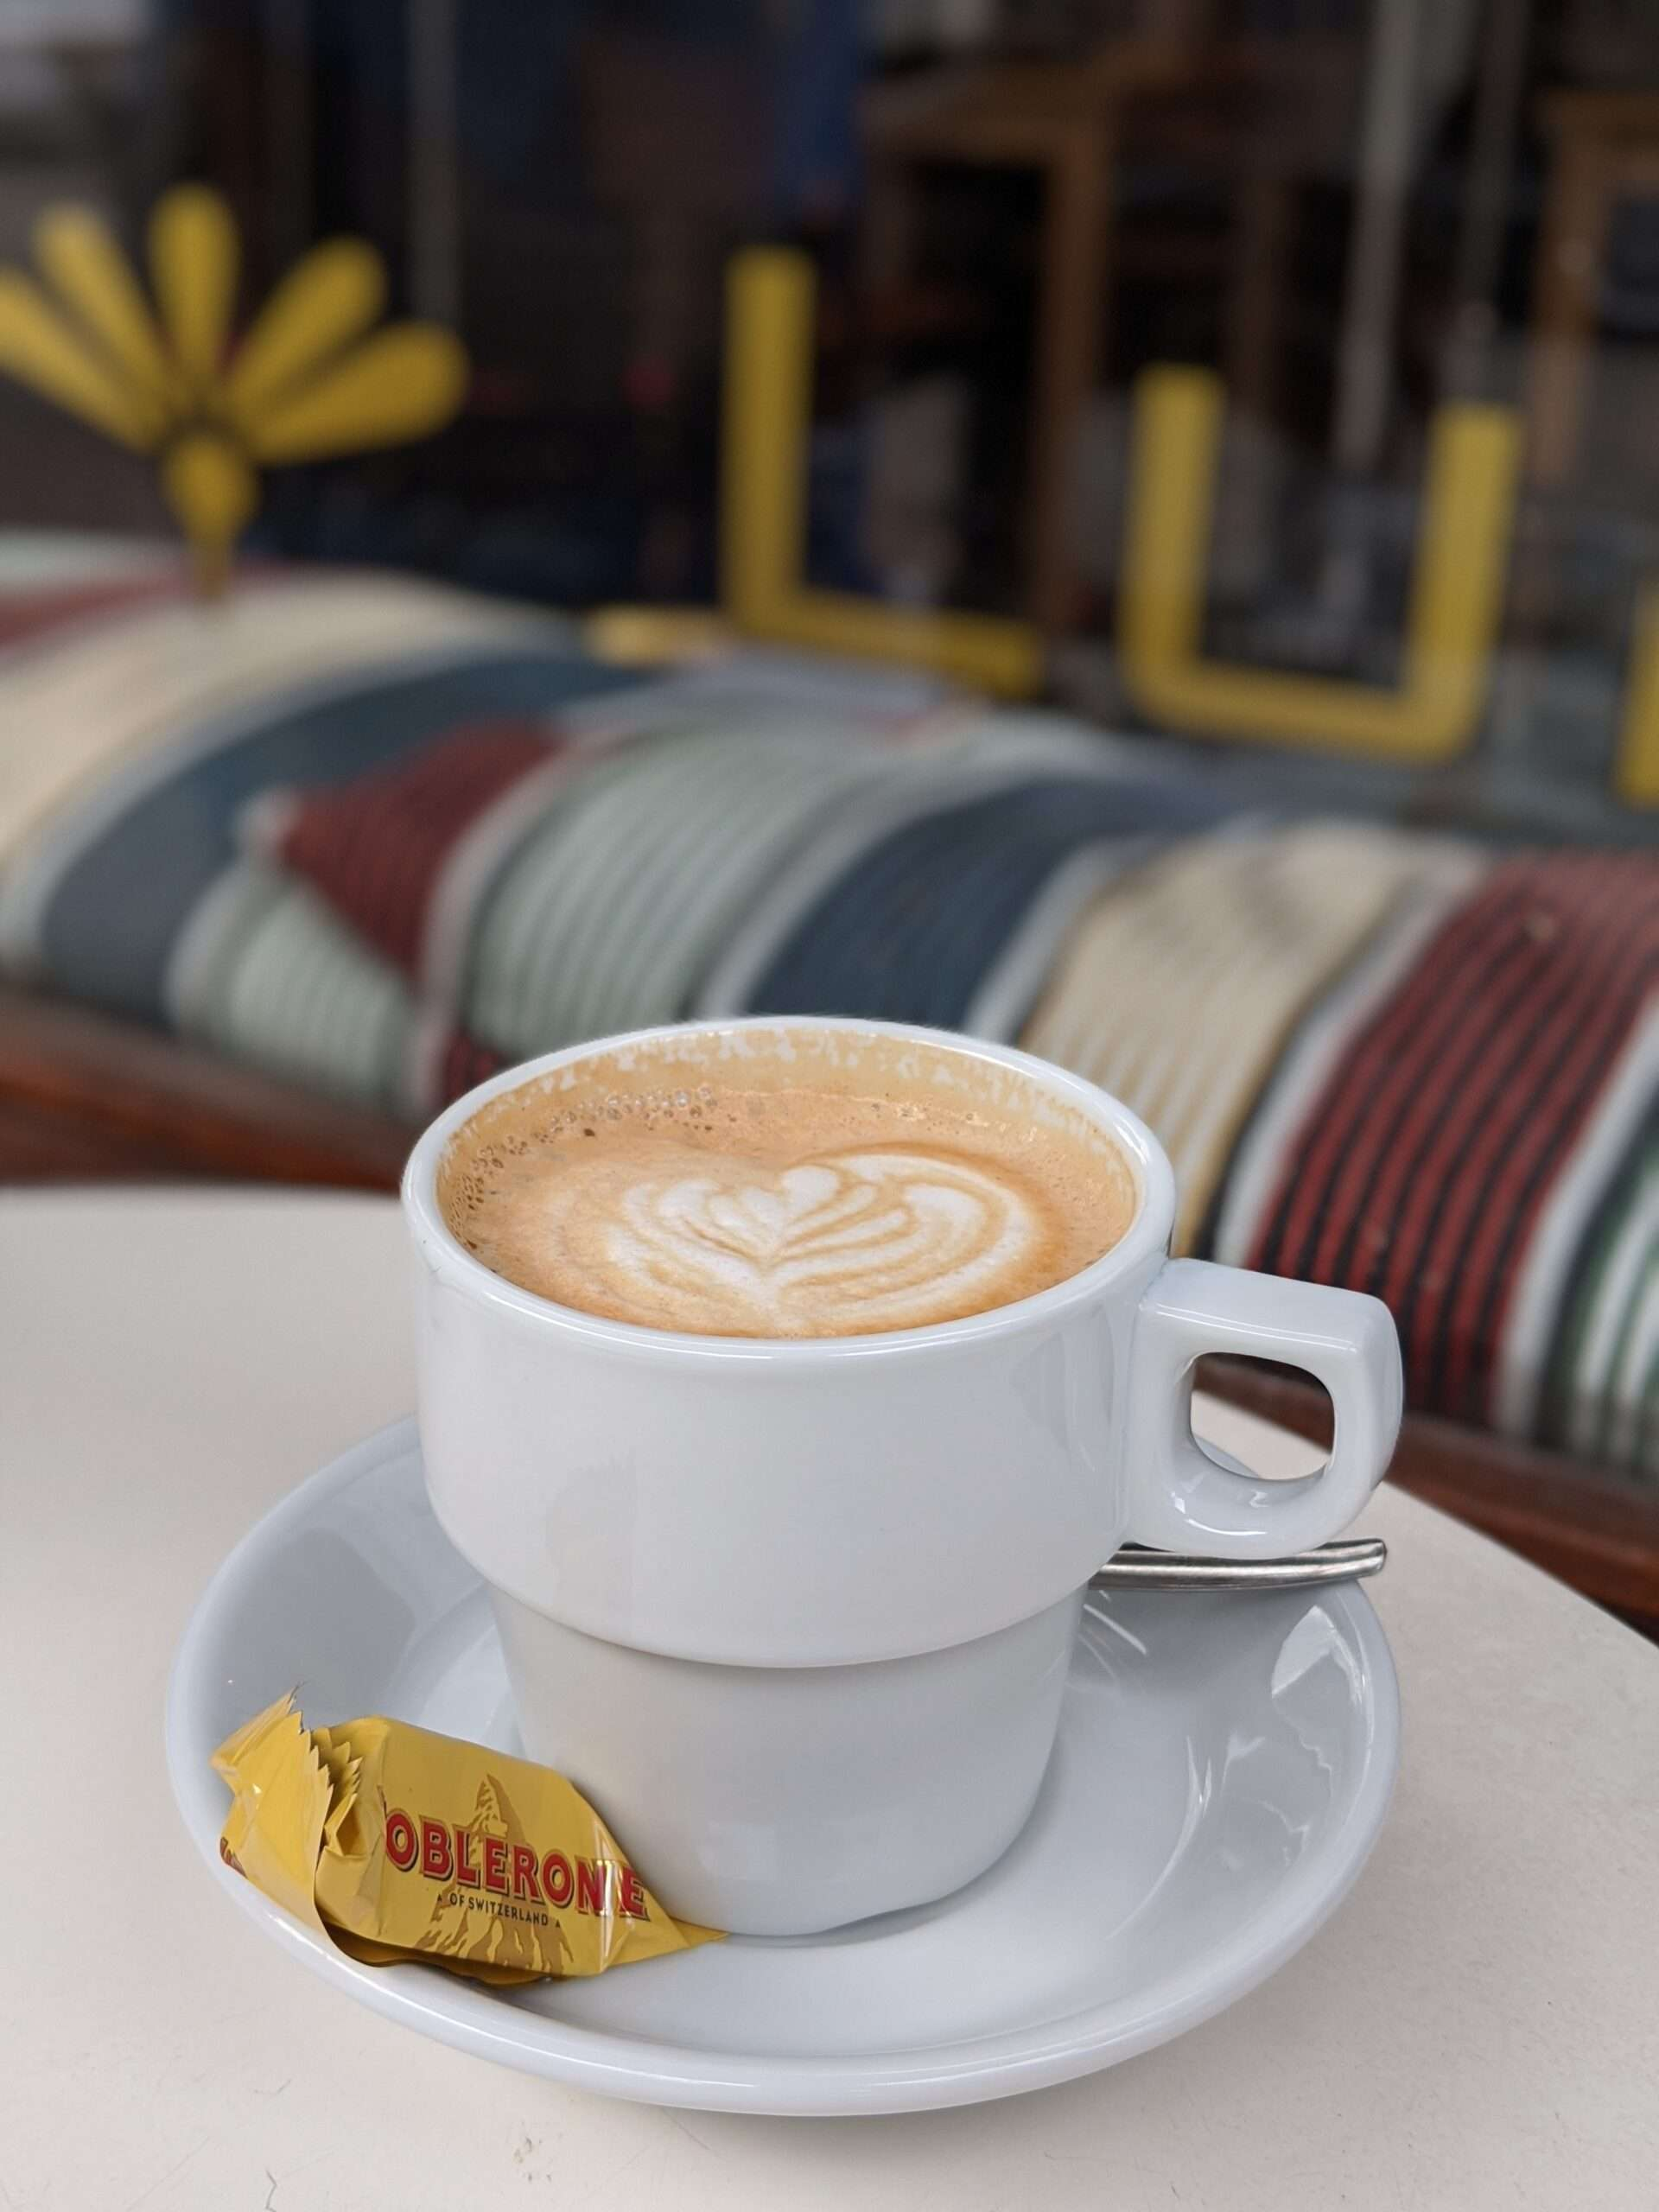 flat white coffee in a white cup and saucer, with a small toblerone chocolate on the side